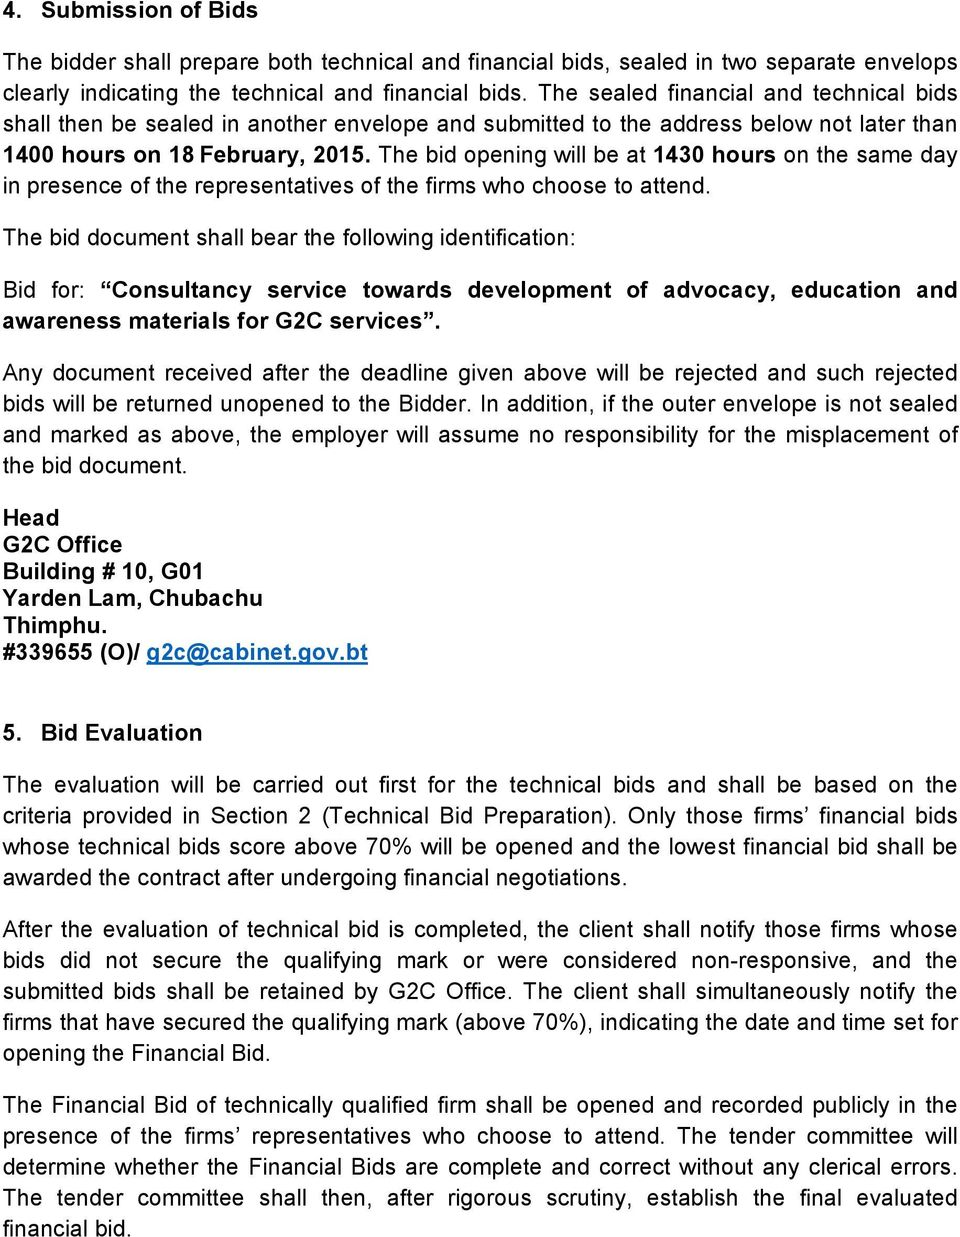 TENDER DOCUMENT FOR CONSULTING SERVICES TOWARDS DEVELOPMENT